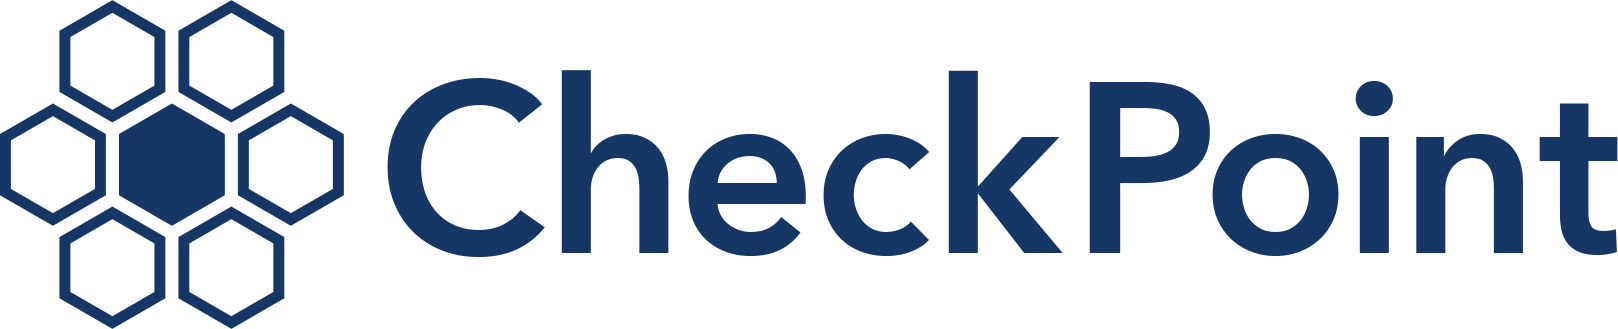 CheckPoint logo, a hexagon grid with the middle hexagon filled.